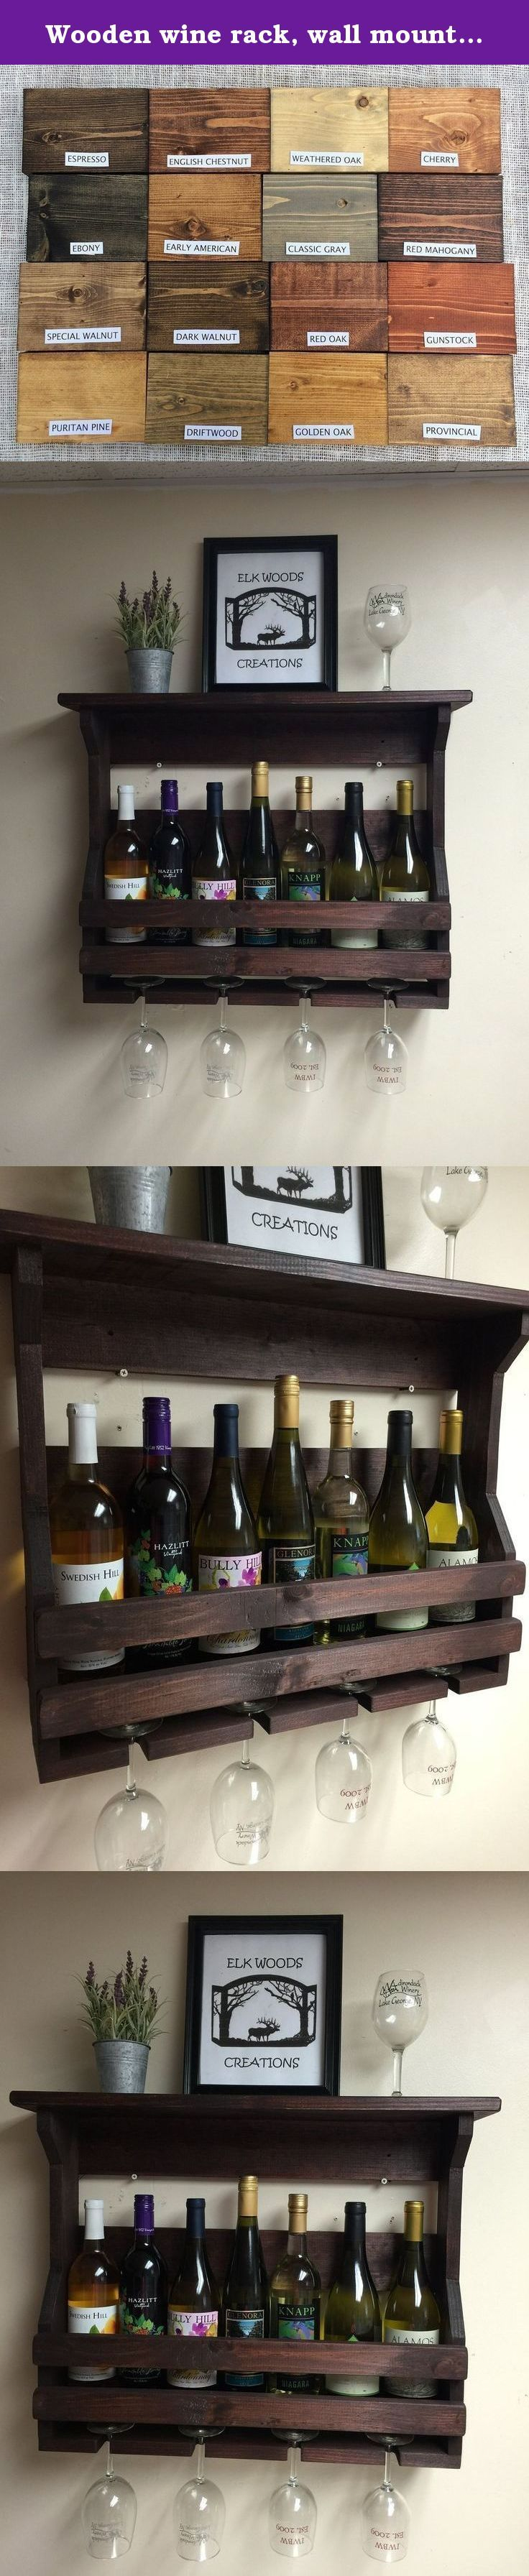 """Wooden wine rack, wall mounted, that displays standard and/or large wine bottles. Wall mounted wooden wine rack and wine glass holder. Shelf on the top for displaying some of your favorite items. Stores up to 7 regular sized wine bottles, or 5 large wine bottles and 4 wine glasses. Overall dimensions: 26"""" wide X 20"""" high X 5.5"""" deep. Two small pre-drilled holes for easy wall installation. Hardware, sheetrock anchors and installation instructions included. Choose your desired color when..."""